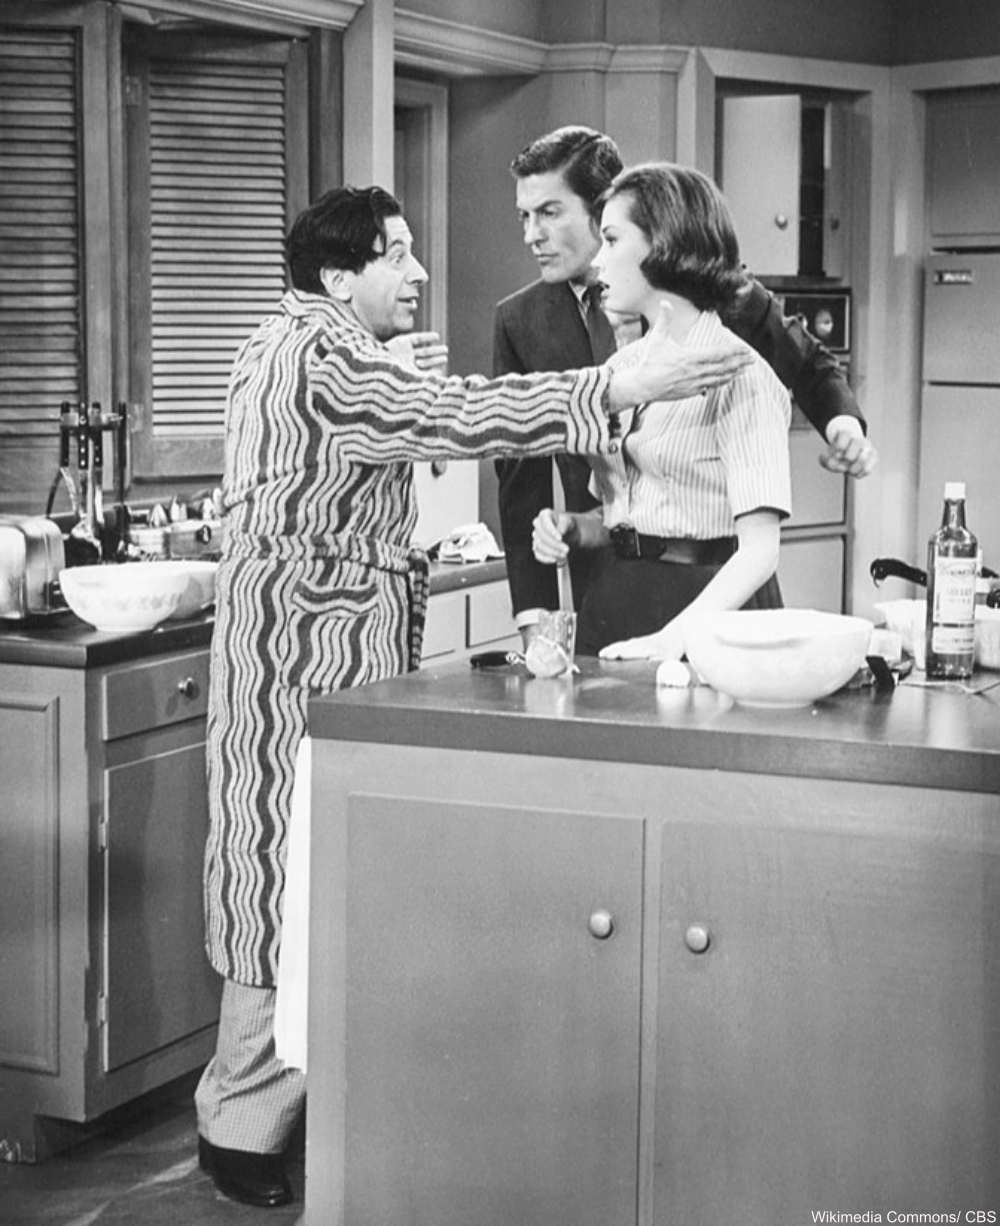 The Petrie's Kitchen on The Dick Van Dyke Show